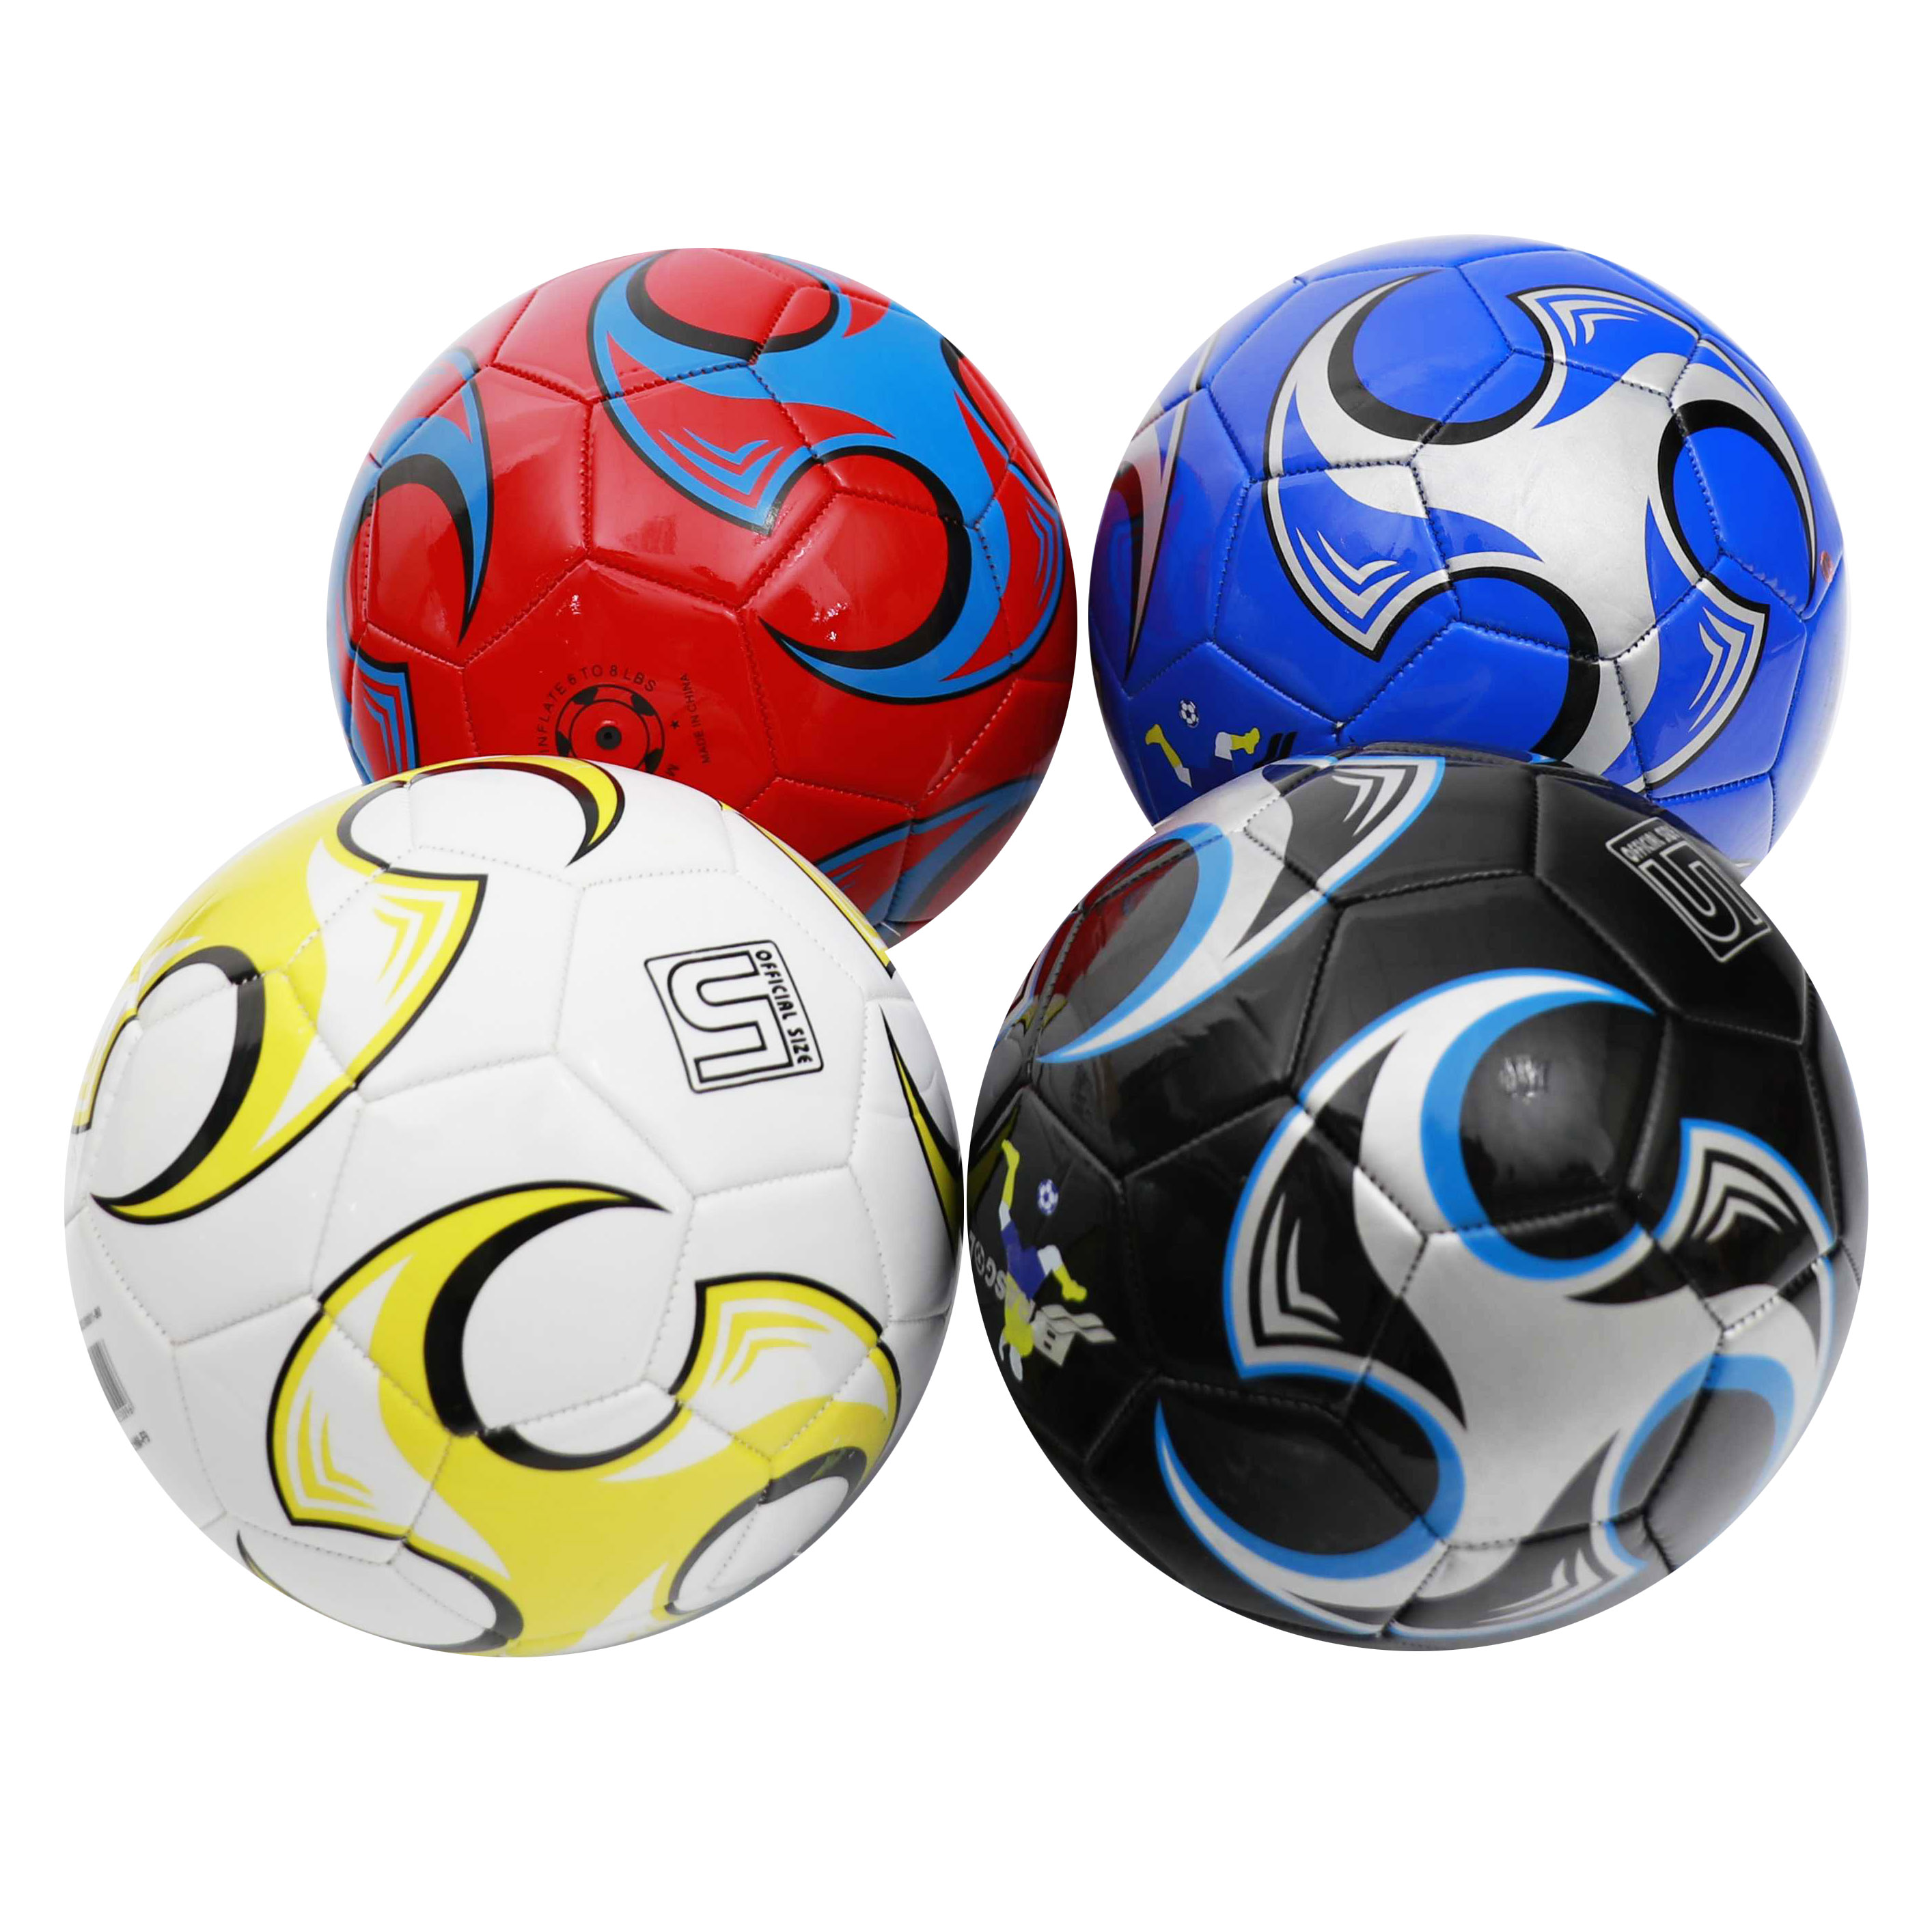 cheap soccer ball ready for shipping no brands mix color and mix design fast delivery soccer ball /<strong>football</strong>